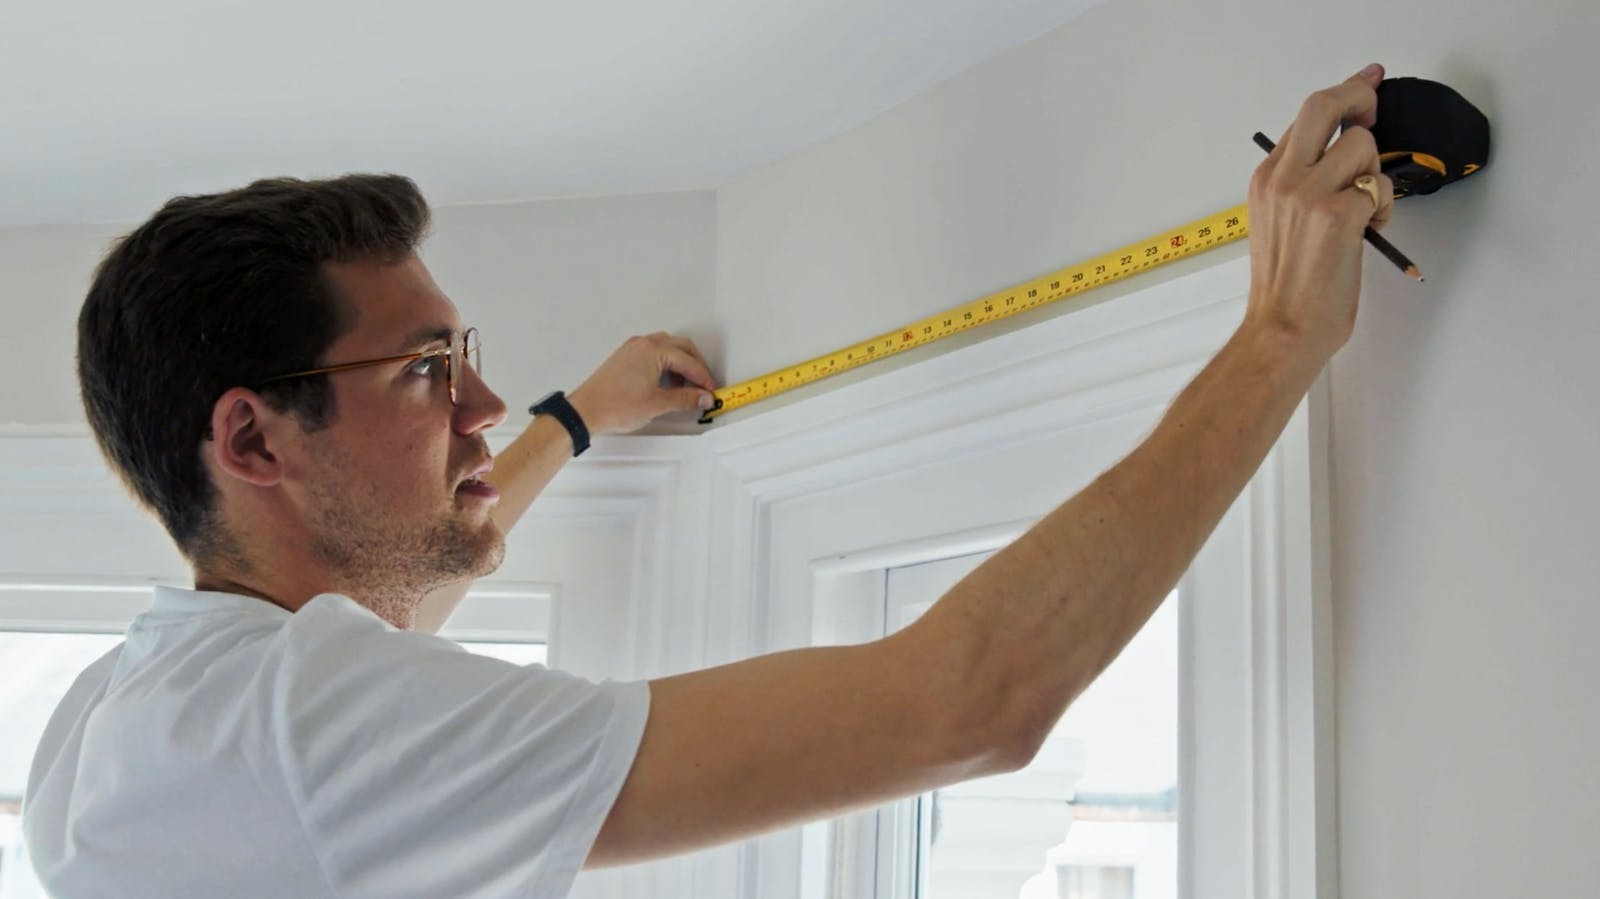 Man holding measuring tape against white wall